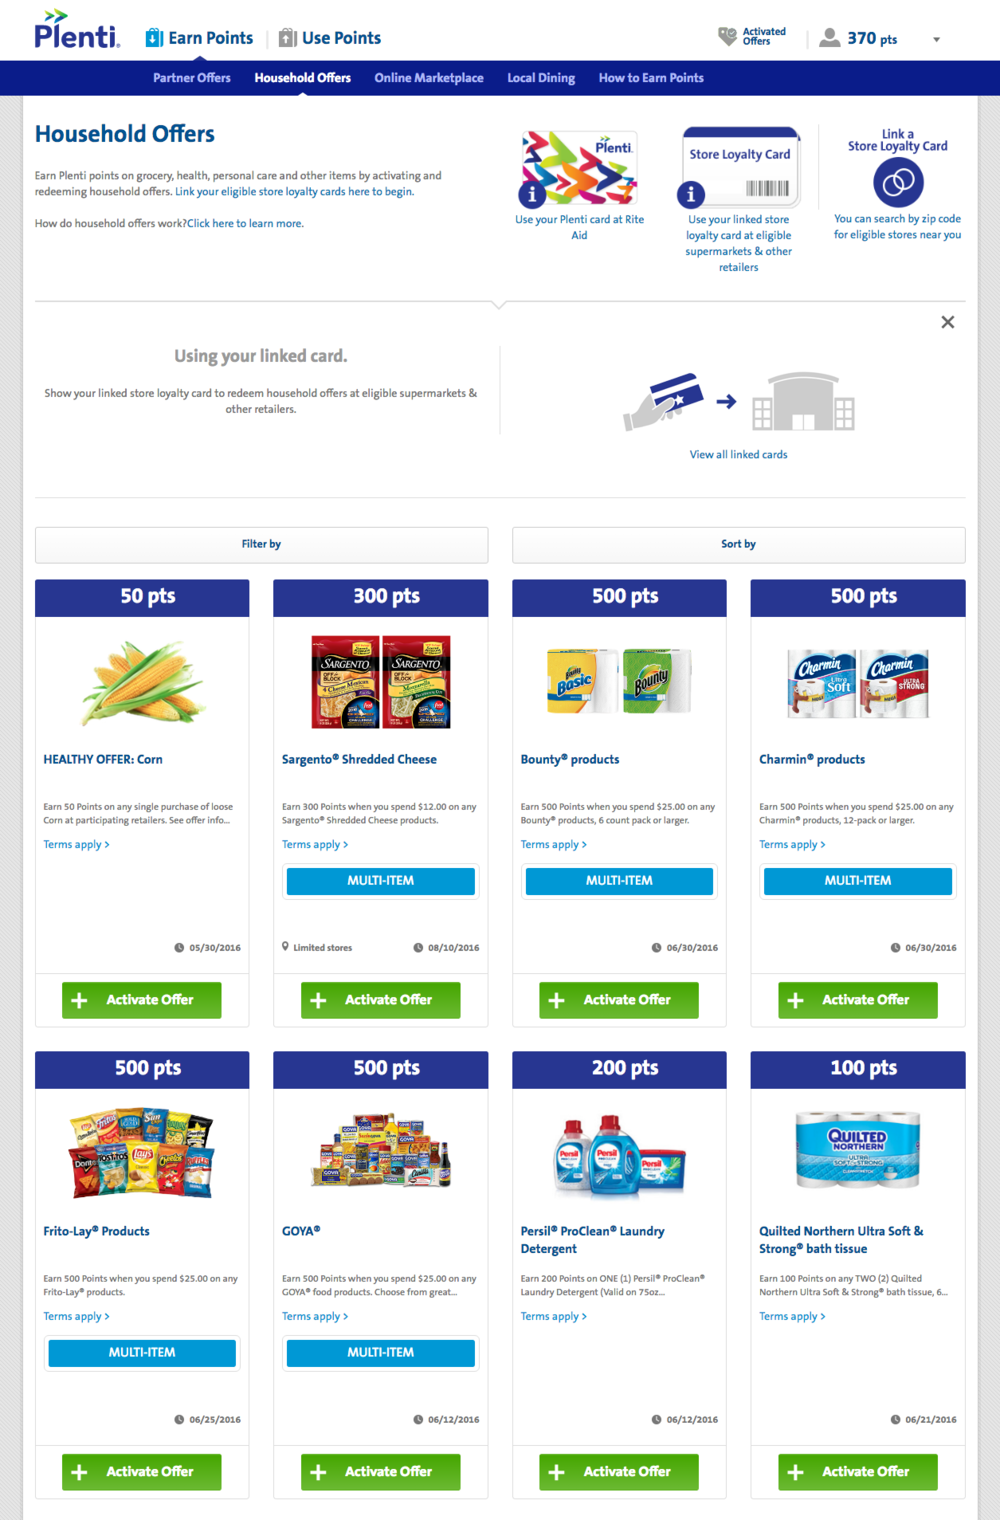 screencapture-www-plenti-com-earn-points-household-offers-1463701387873.png